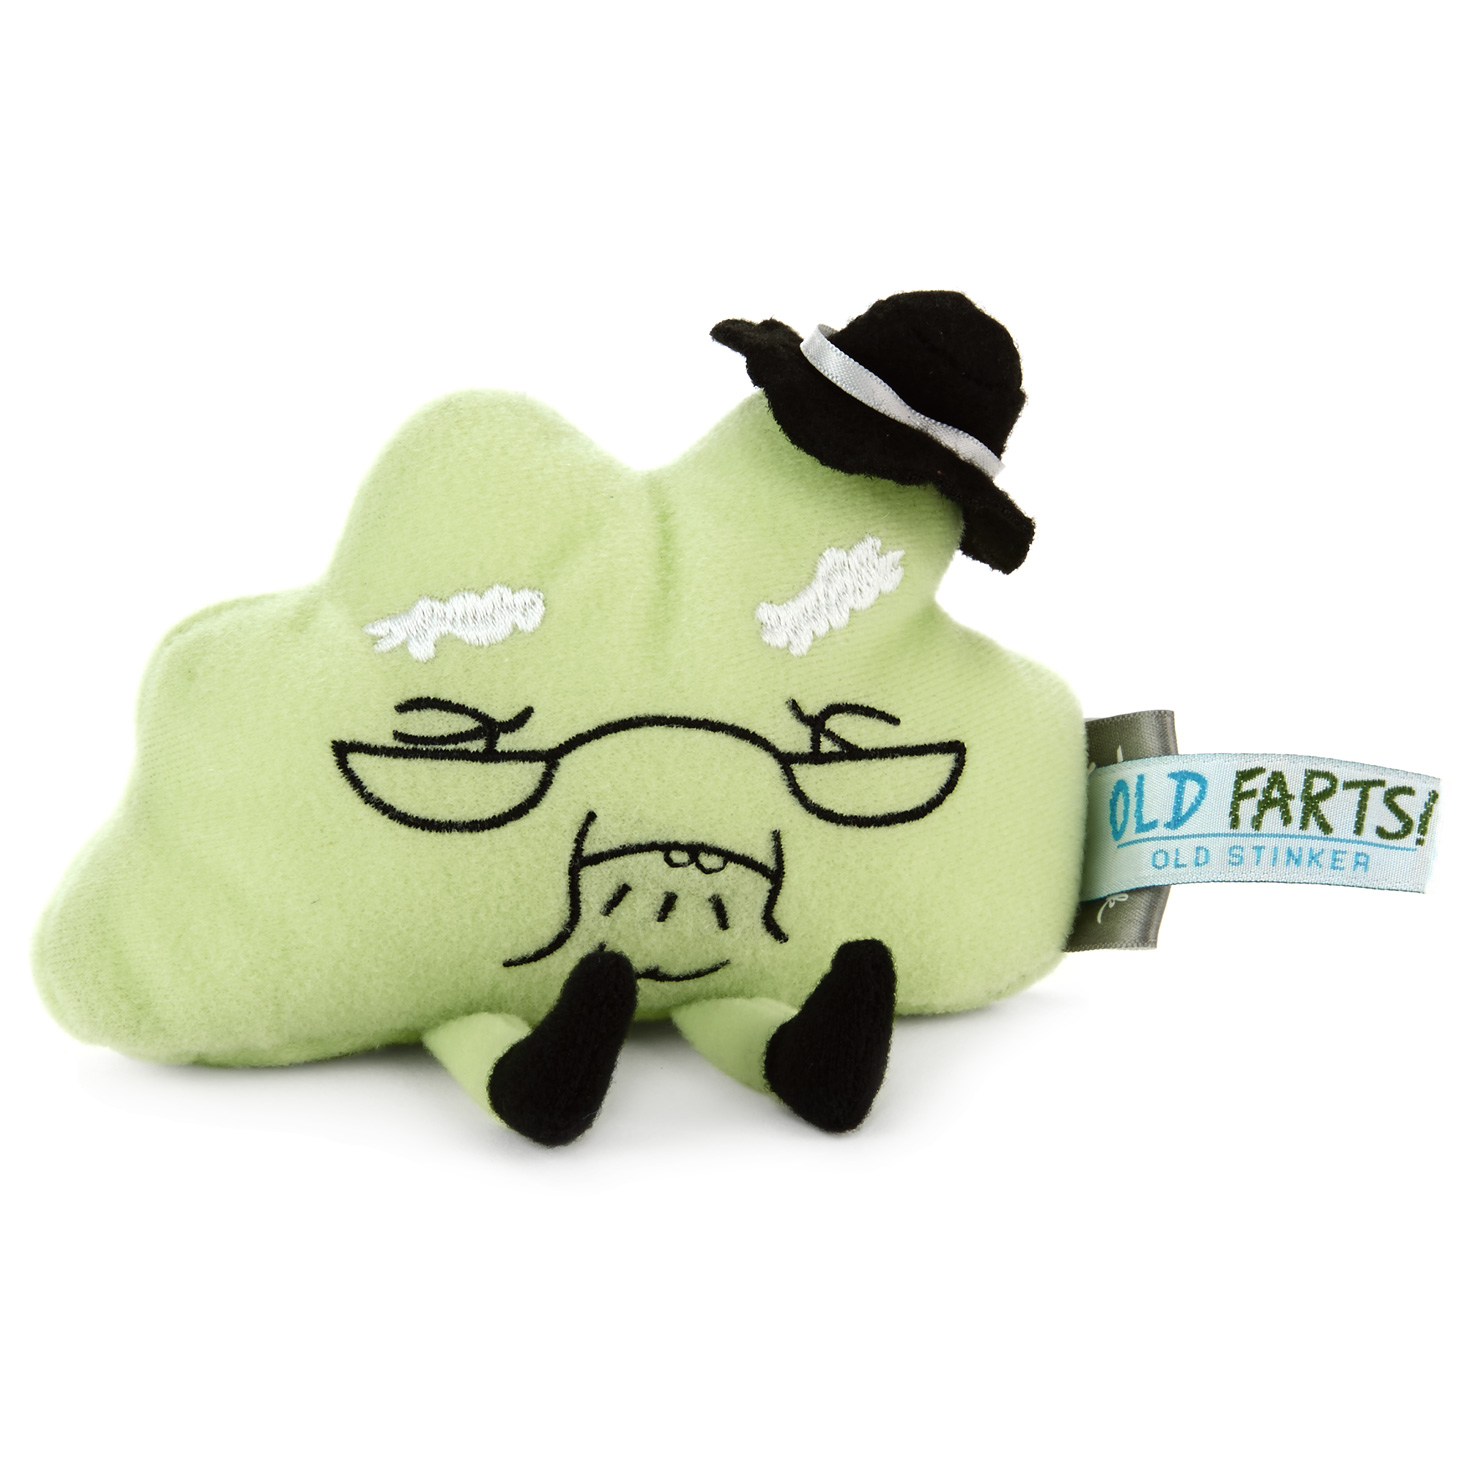 Hallmark Plush Sm Old Fart Old Guy